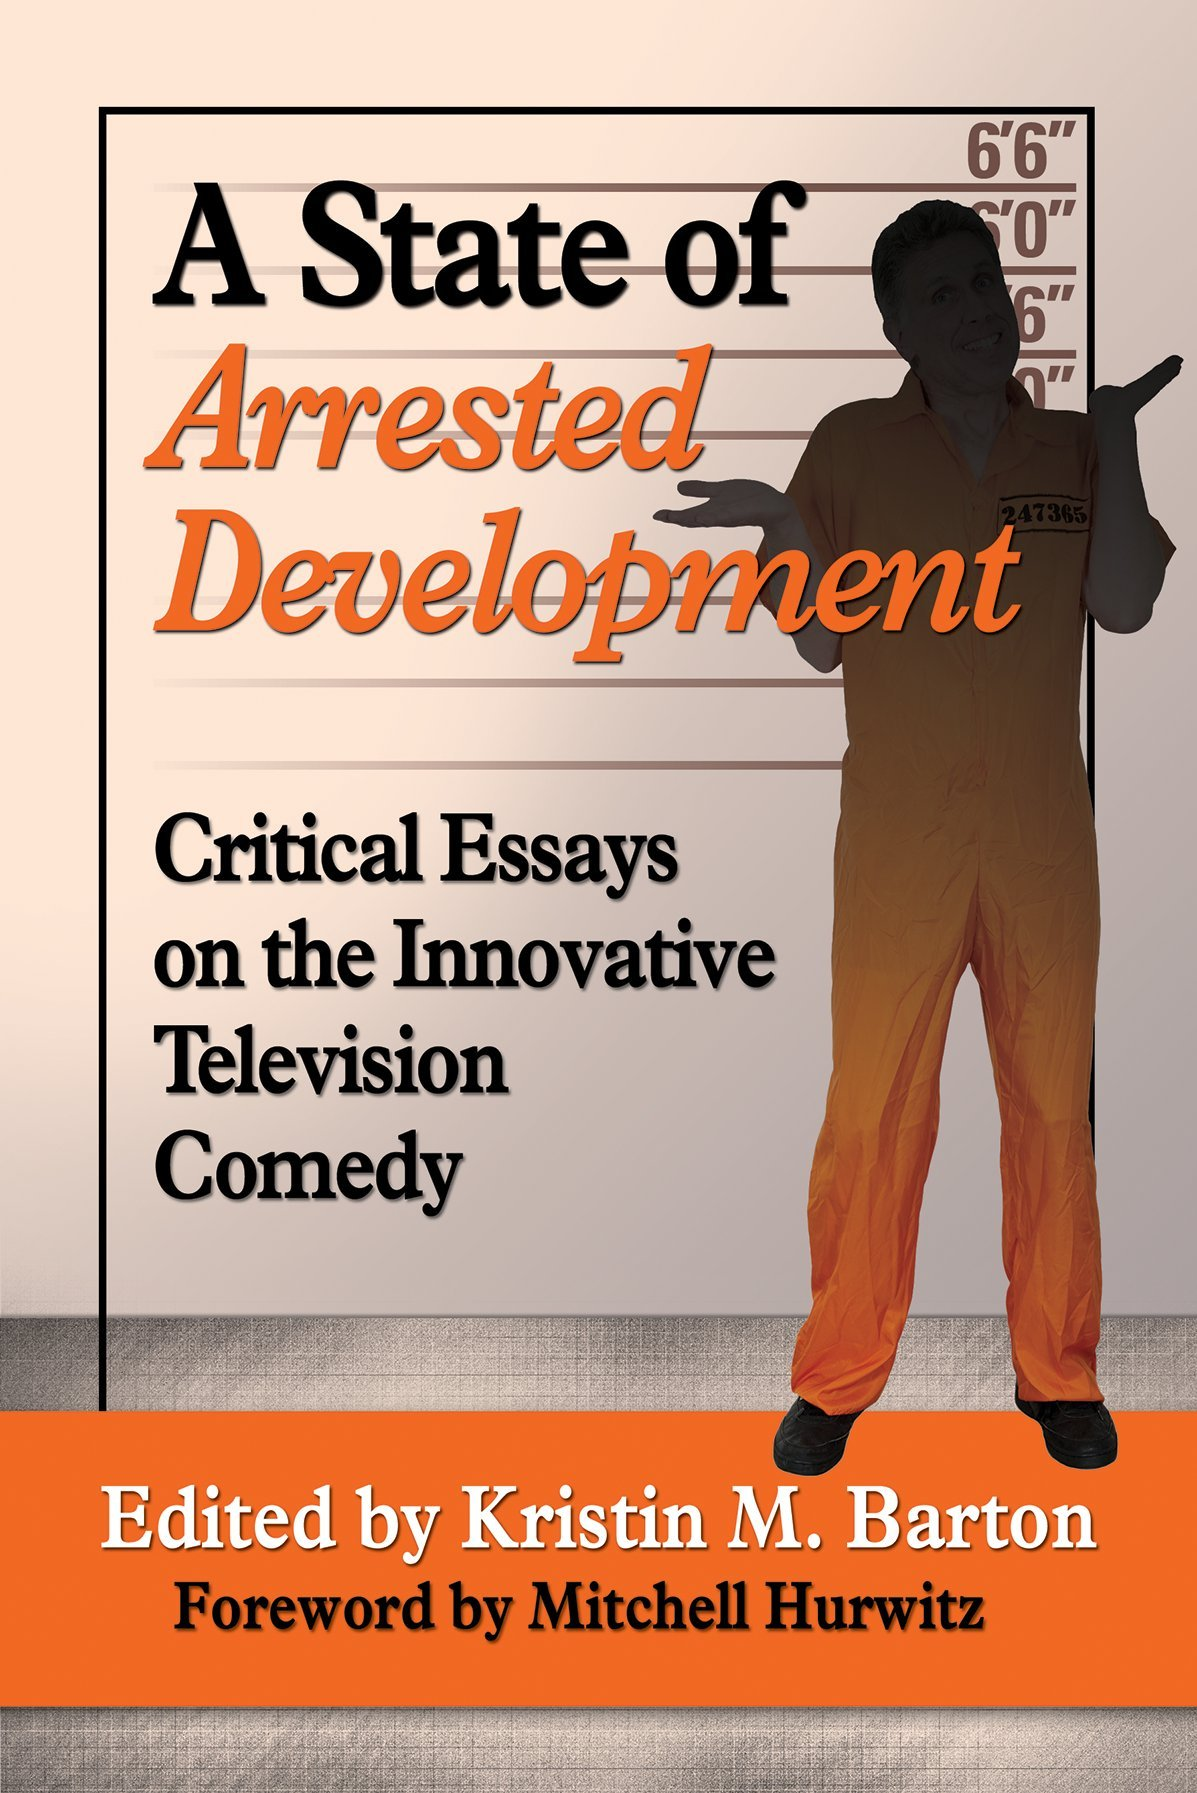 a state of arrested development critical essays on the innovative a state of arrested development critical essays on the innovative television comedy co uk kristin m barton 9780786479917 books